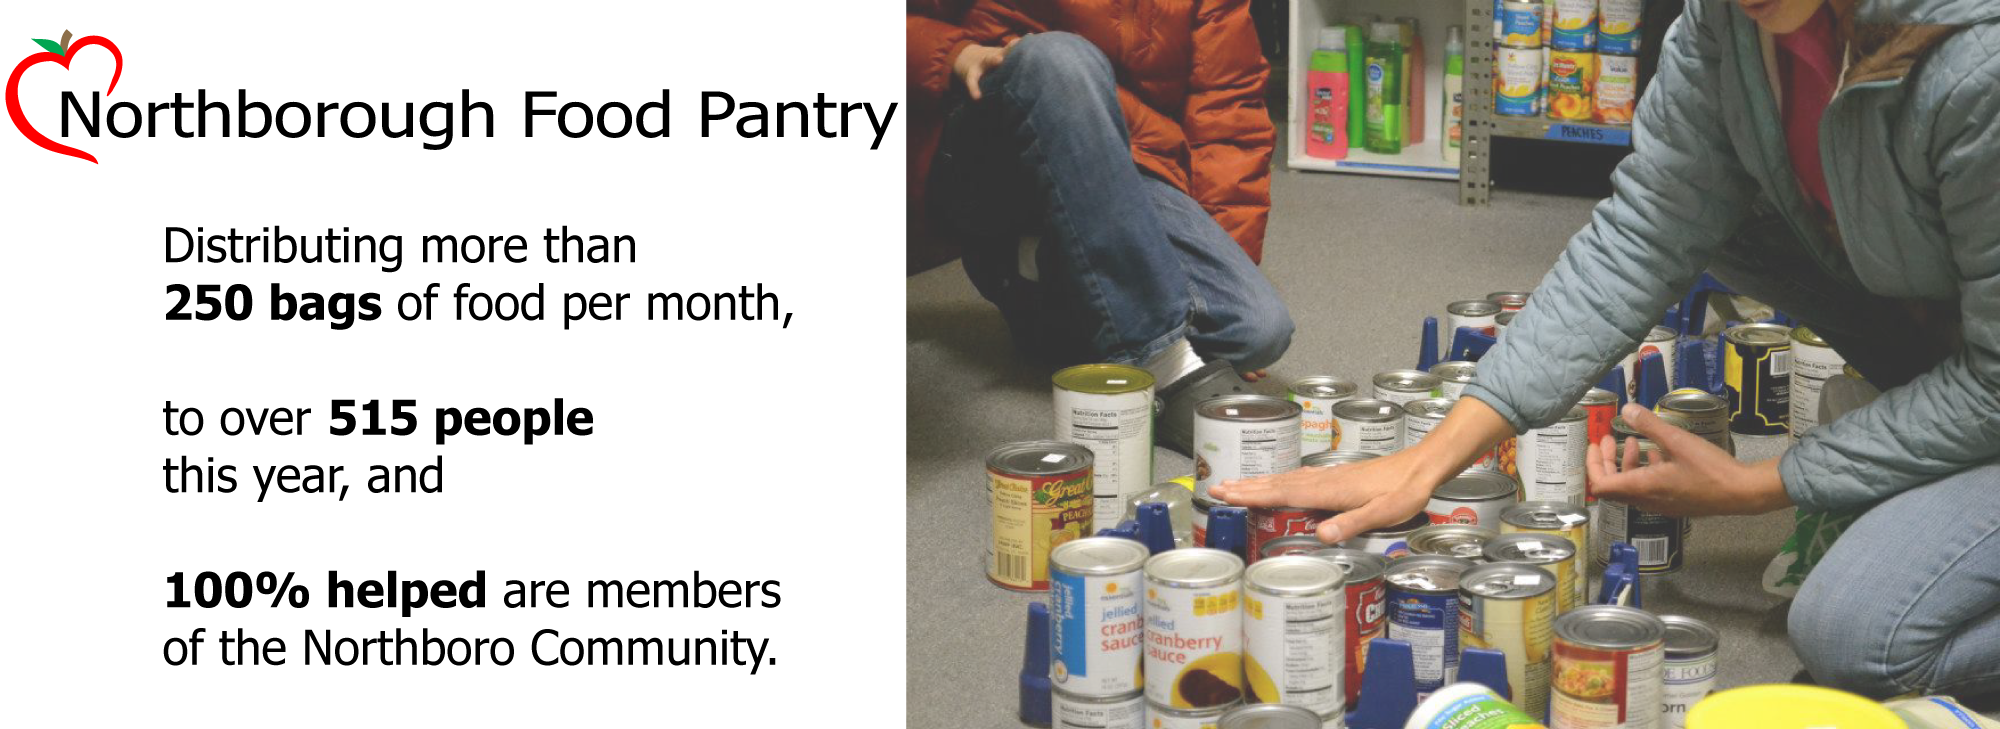 Northborough Food Pantry